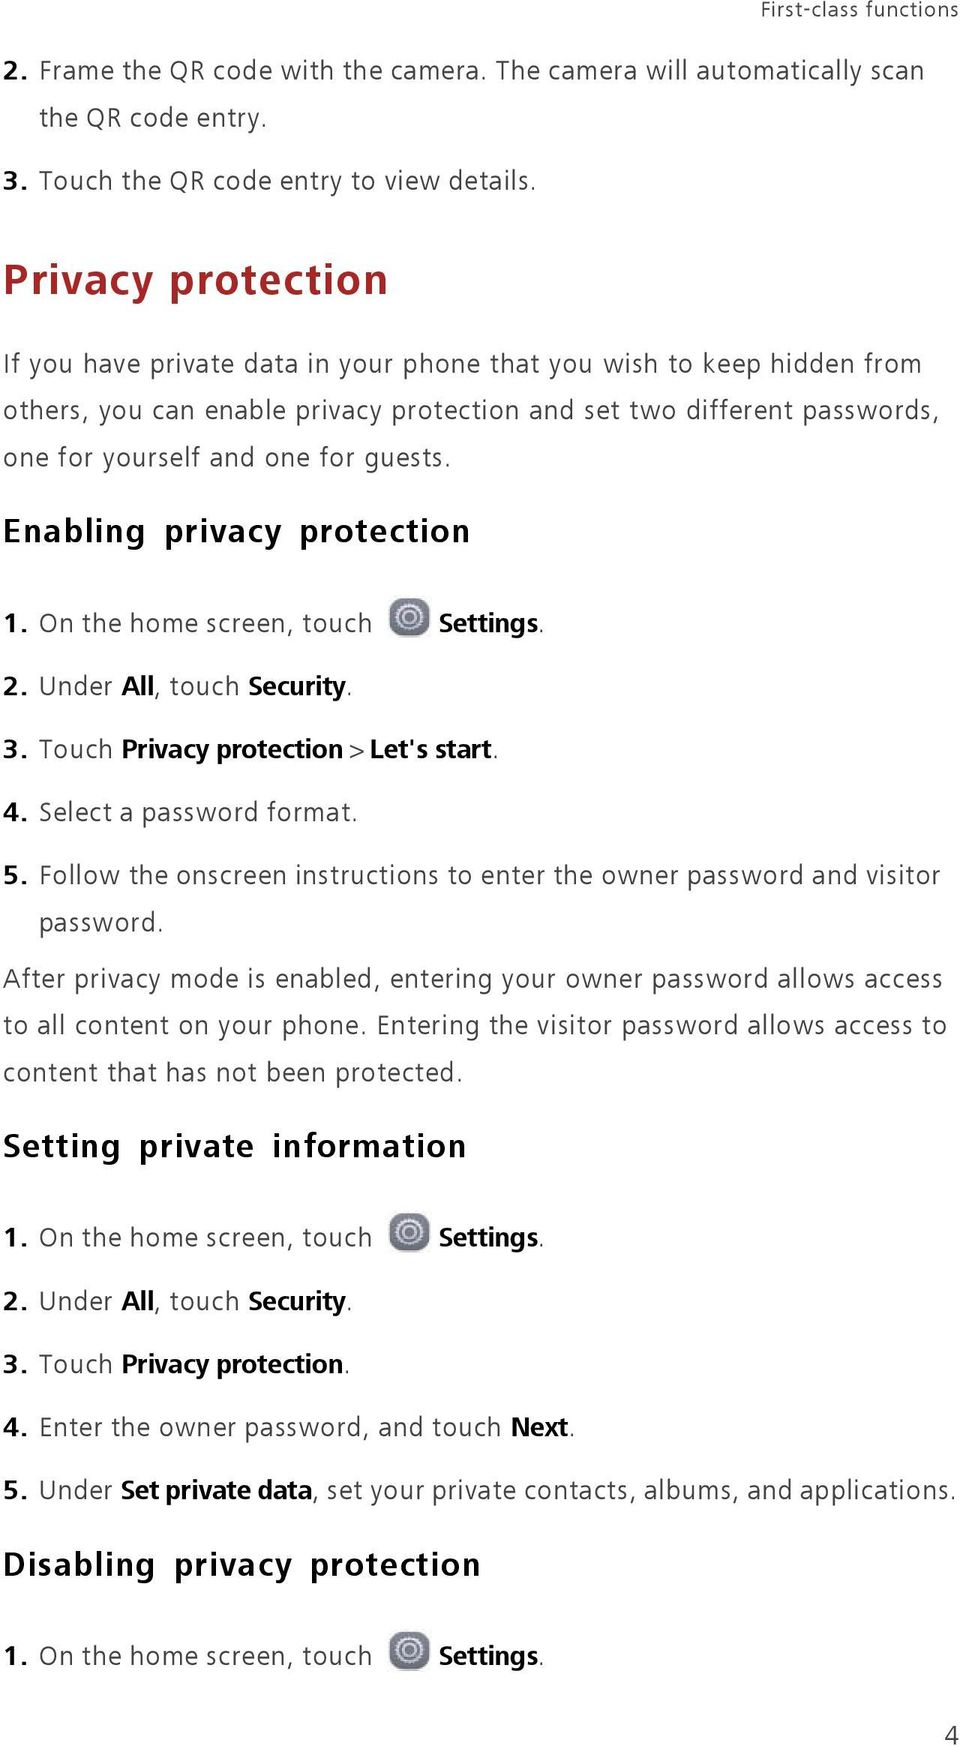 guests. Enabling privacy protection 1. On the home screen, touch Settings. 2. Under All, touch Security. 3. Touch Privacy protection > Let's start. 4. Select a password format. 5.